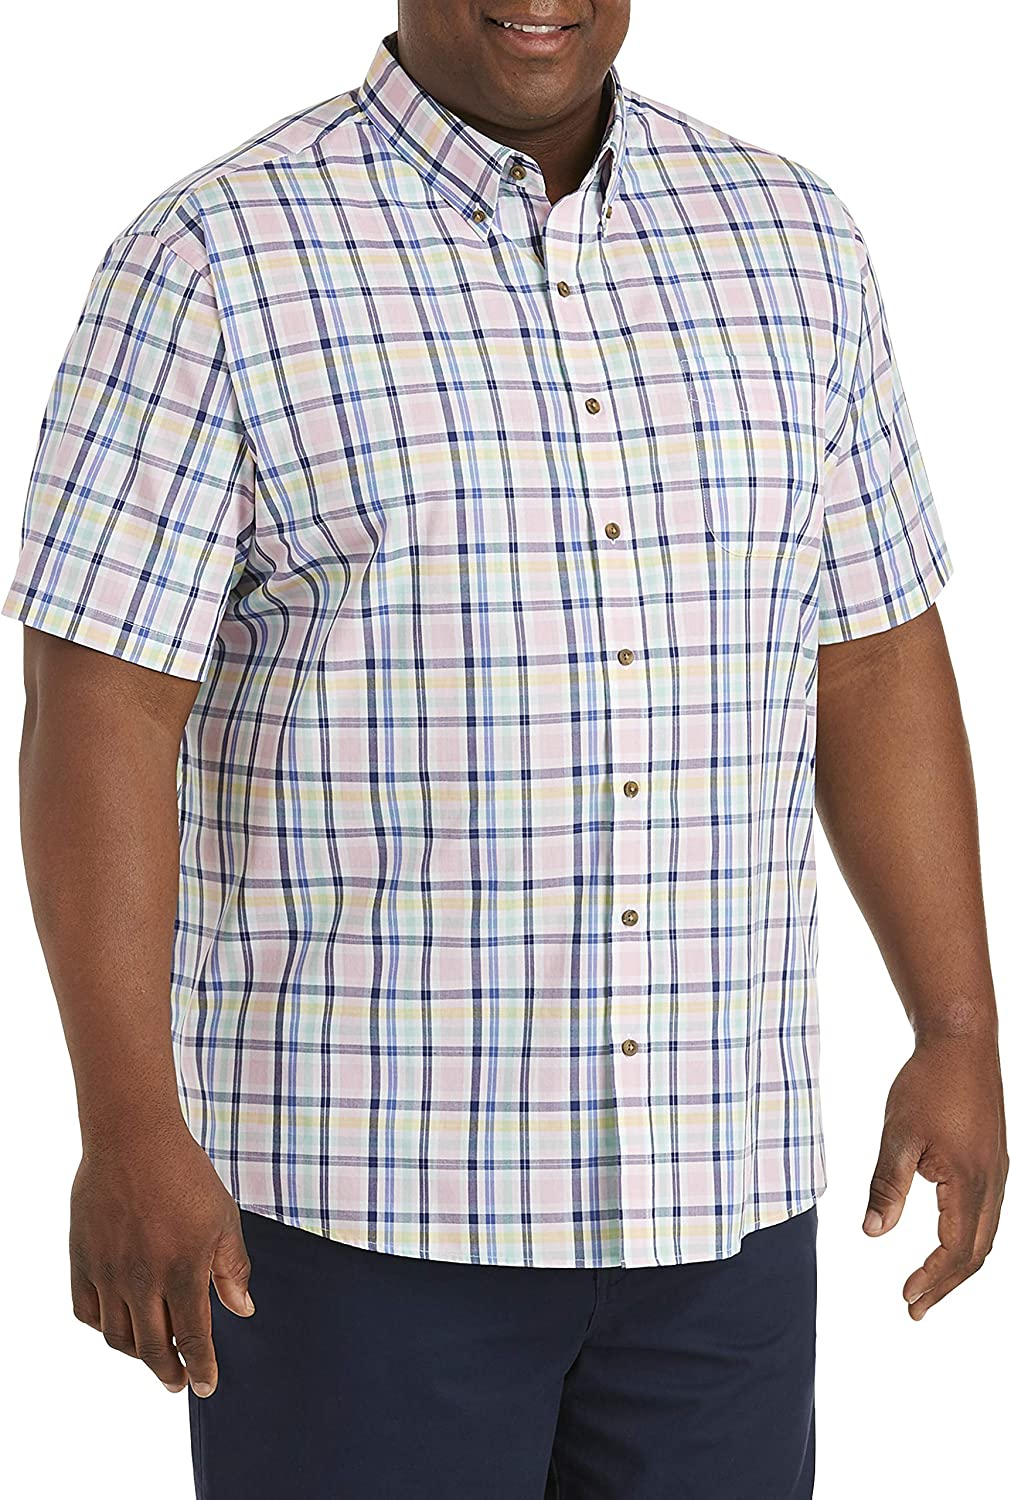 Harbor Bay by DXL Big and Tall Easy-Care Multi Large Plaid Sport Shirt, Pink